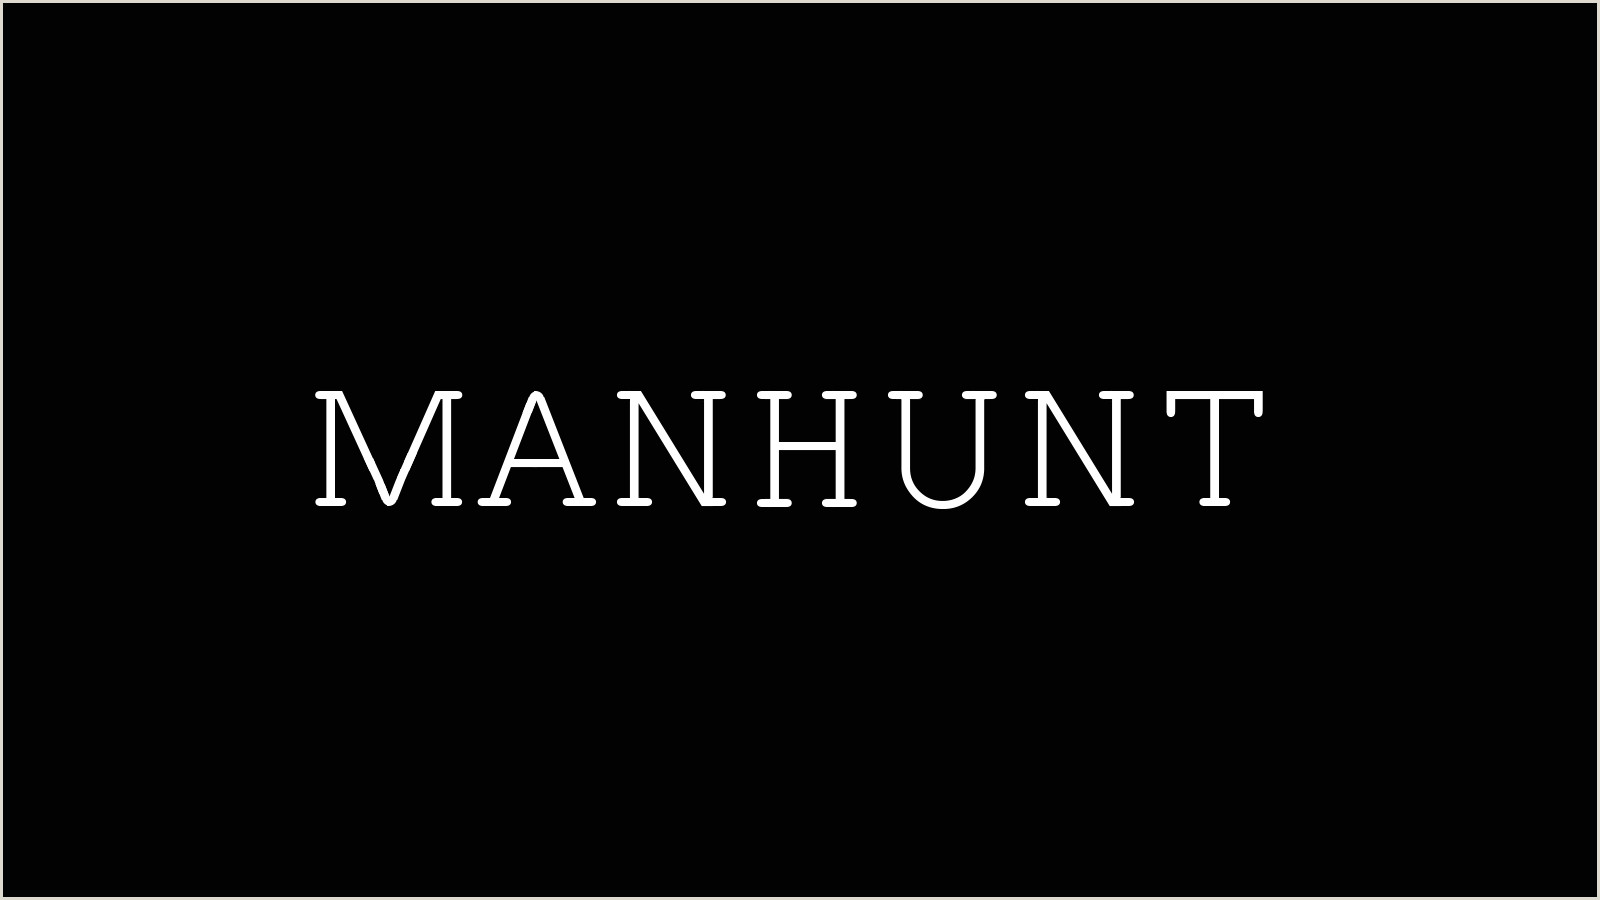 Business Card White Background Manhunt 2019 Tv Series